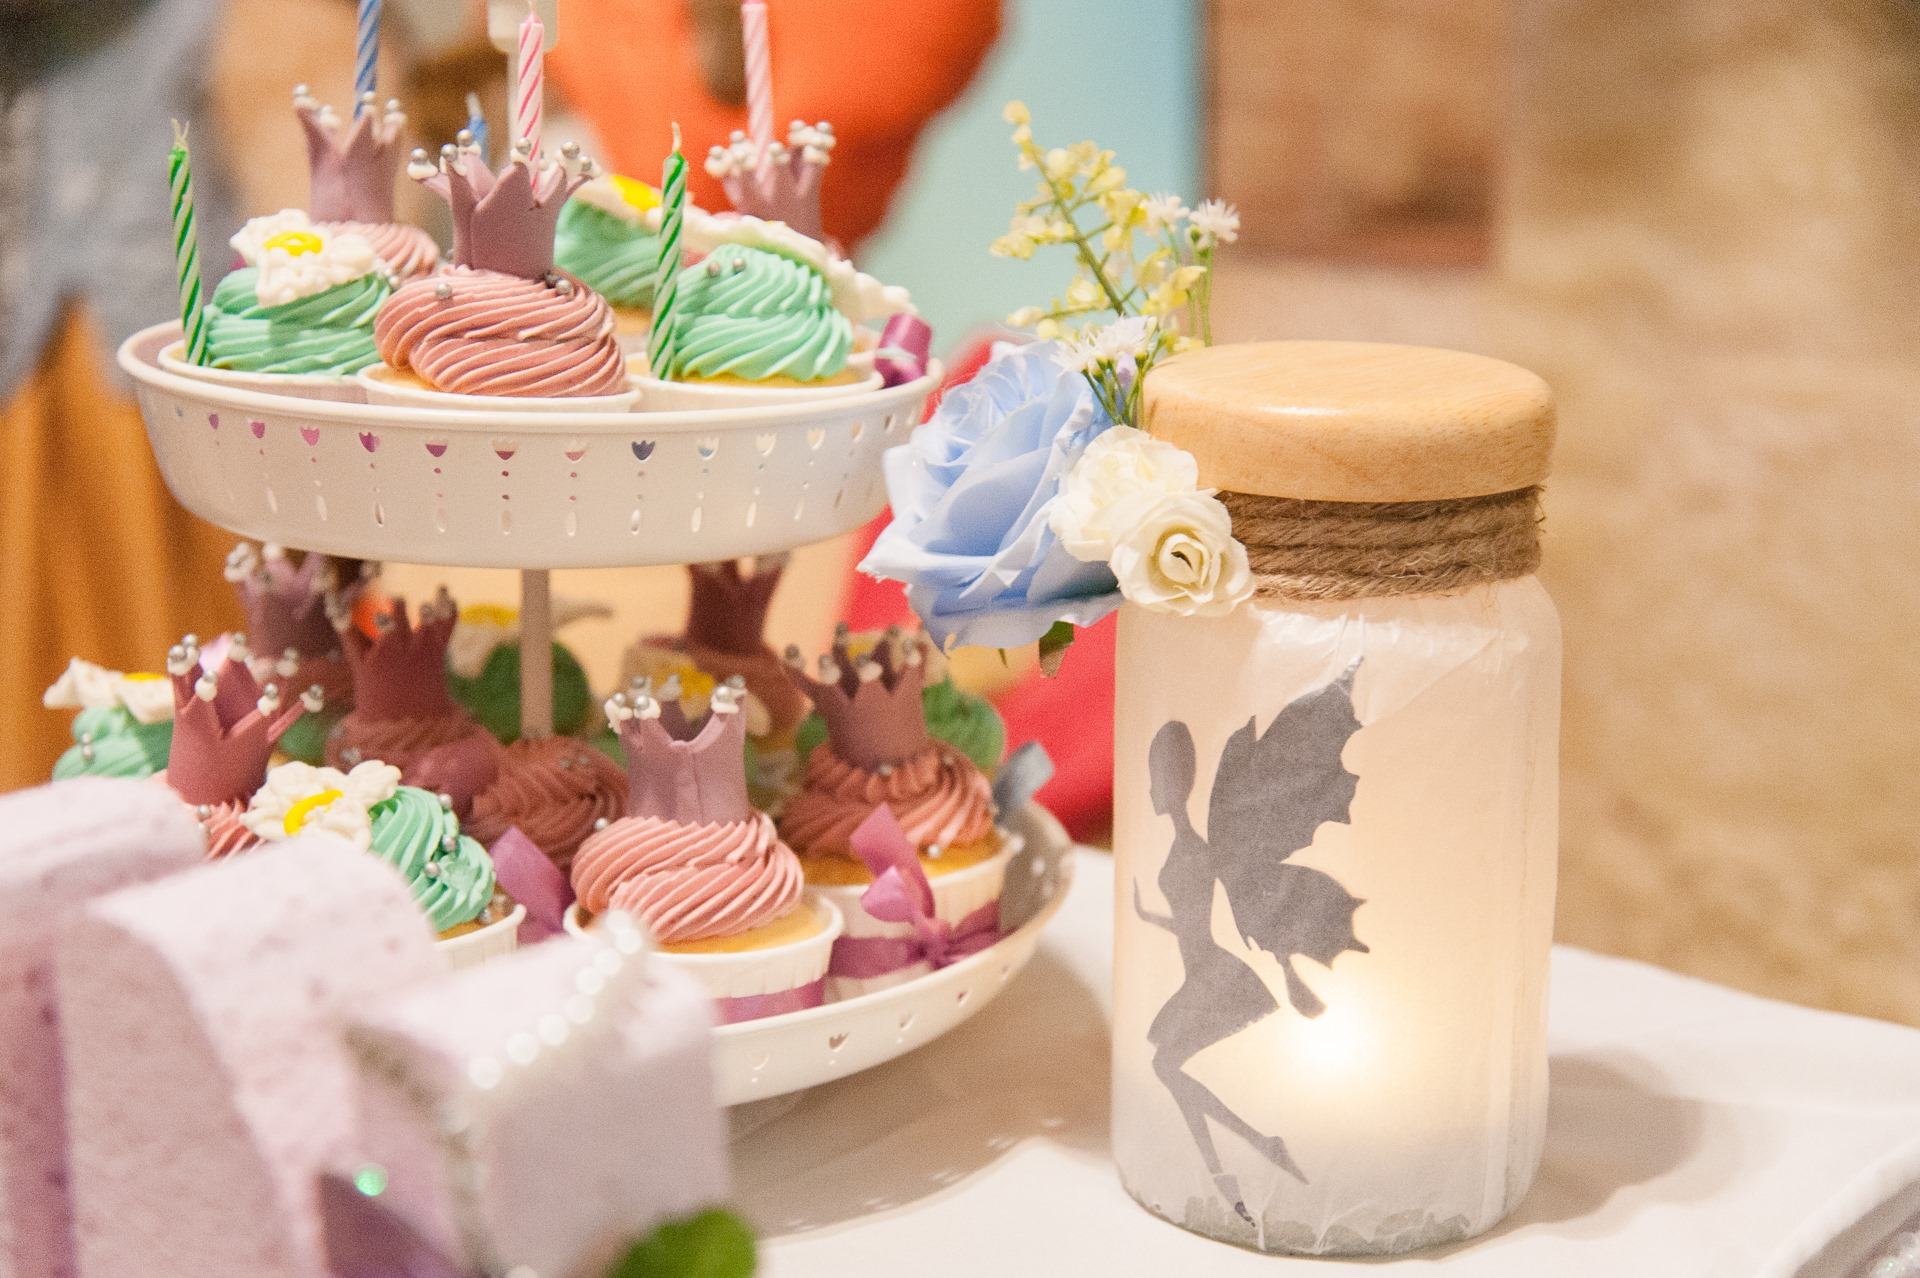 Cute little fairy birthday themed for your daughters - party includes photo corner, balloons, decorations, catering and entertainments